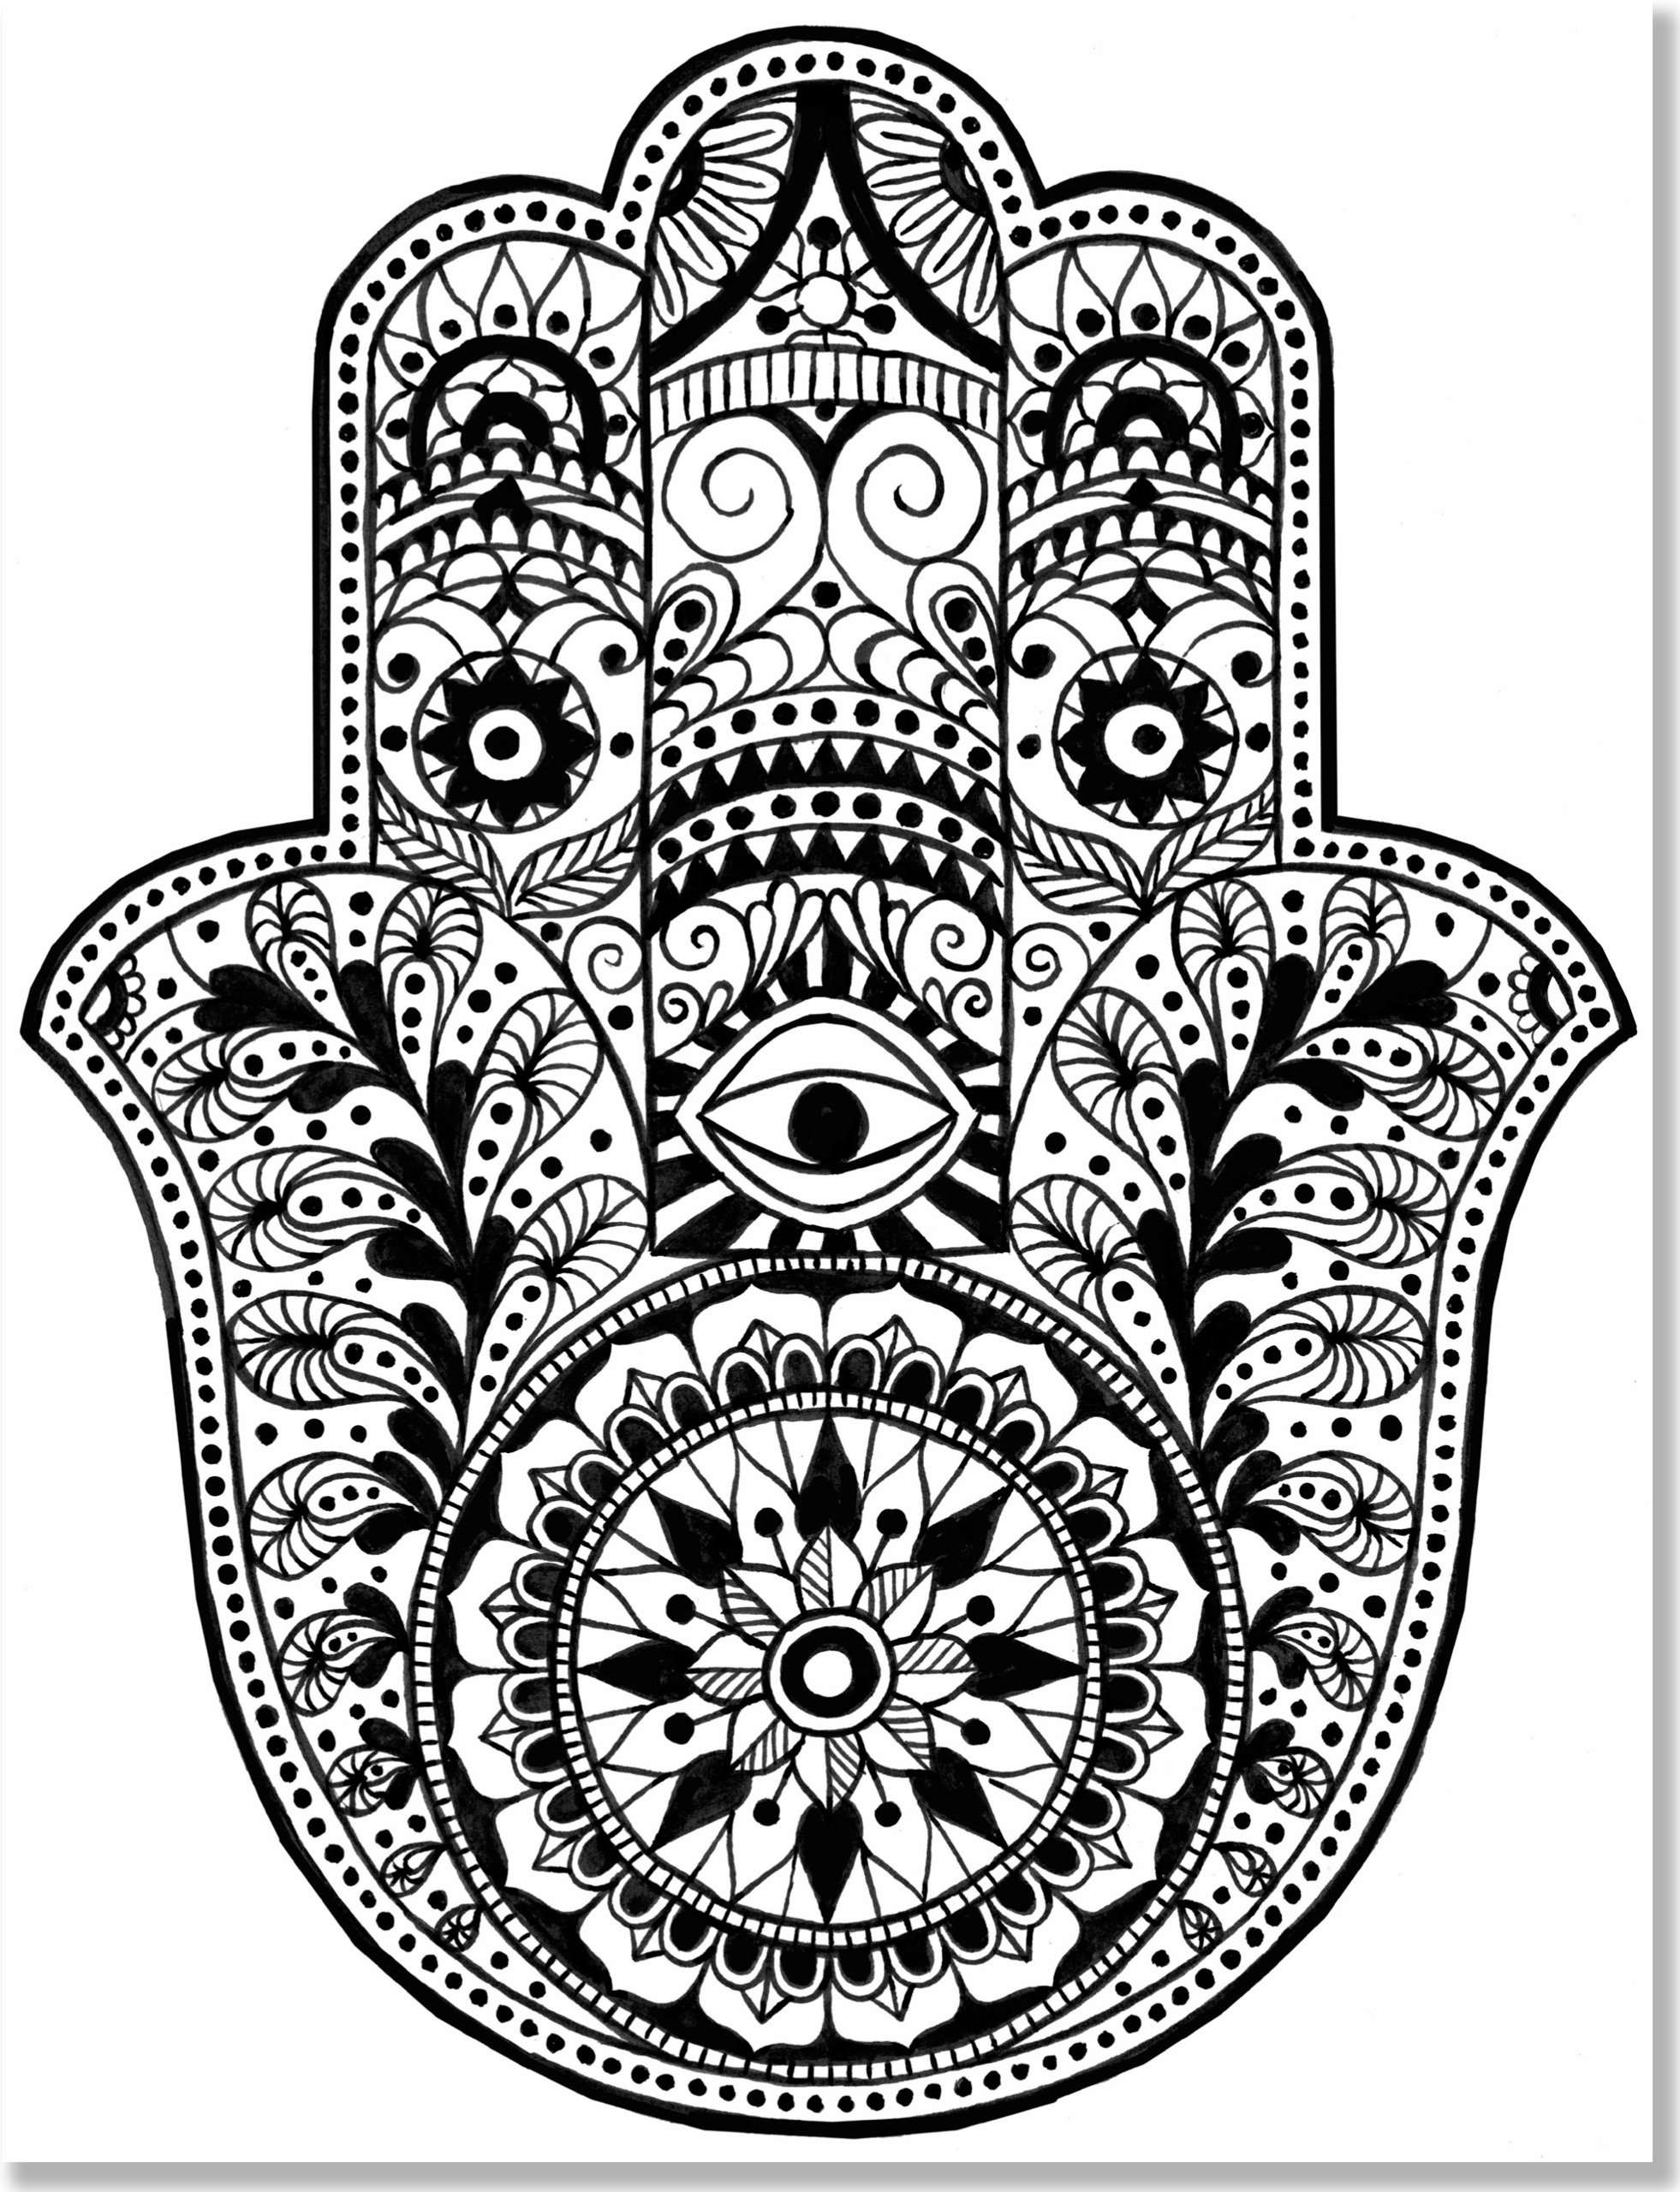 Amazon.com: Mandala Designs Adult Coloring Book (31 stress-relieving ...